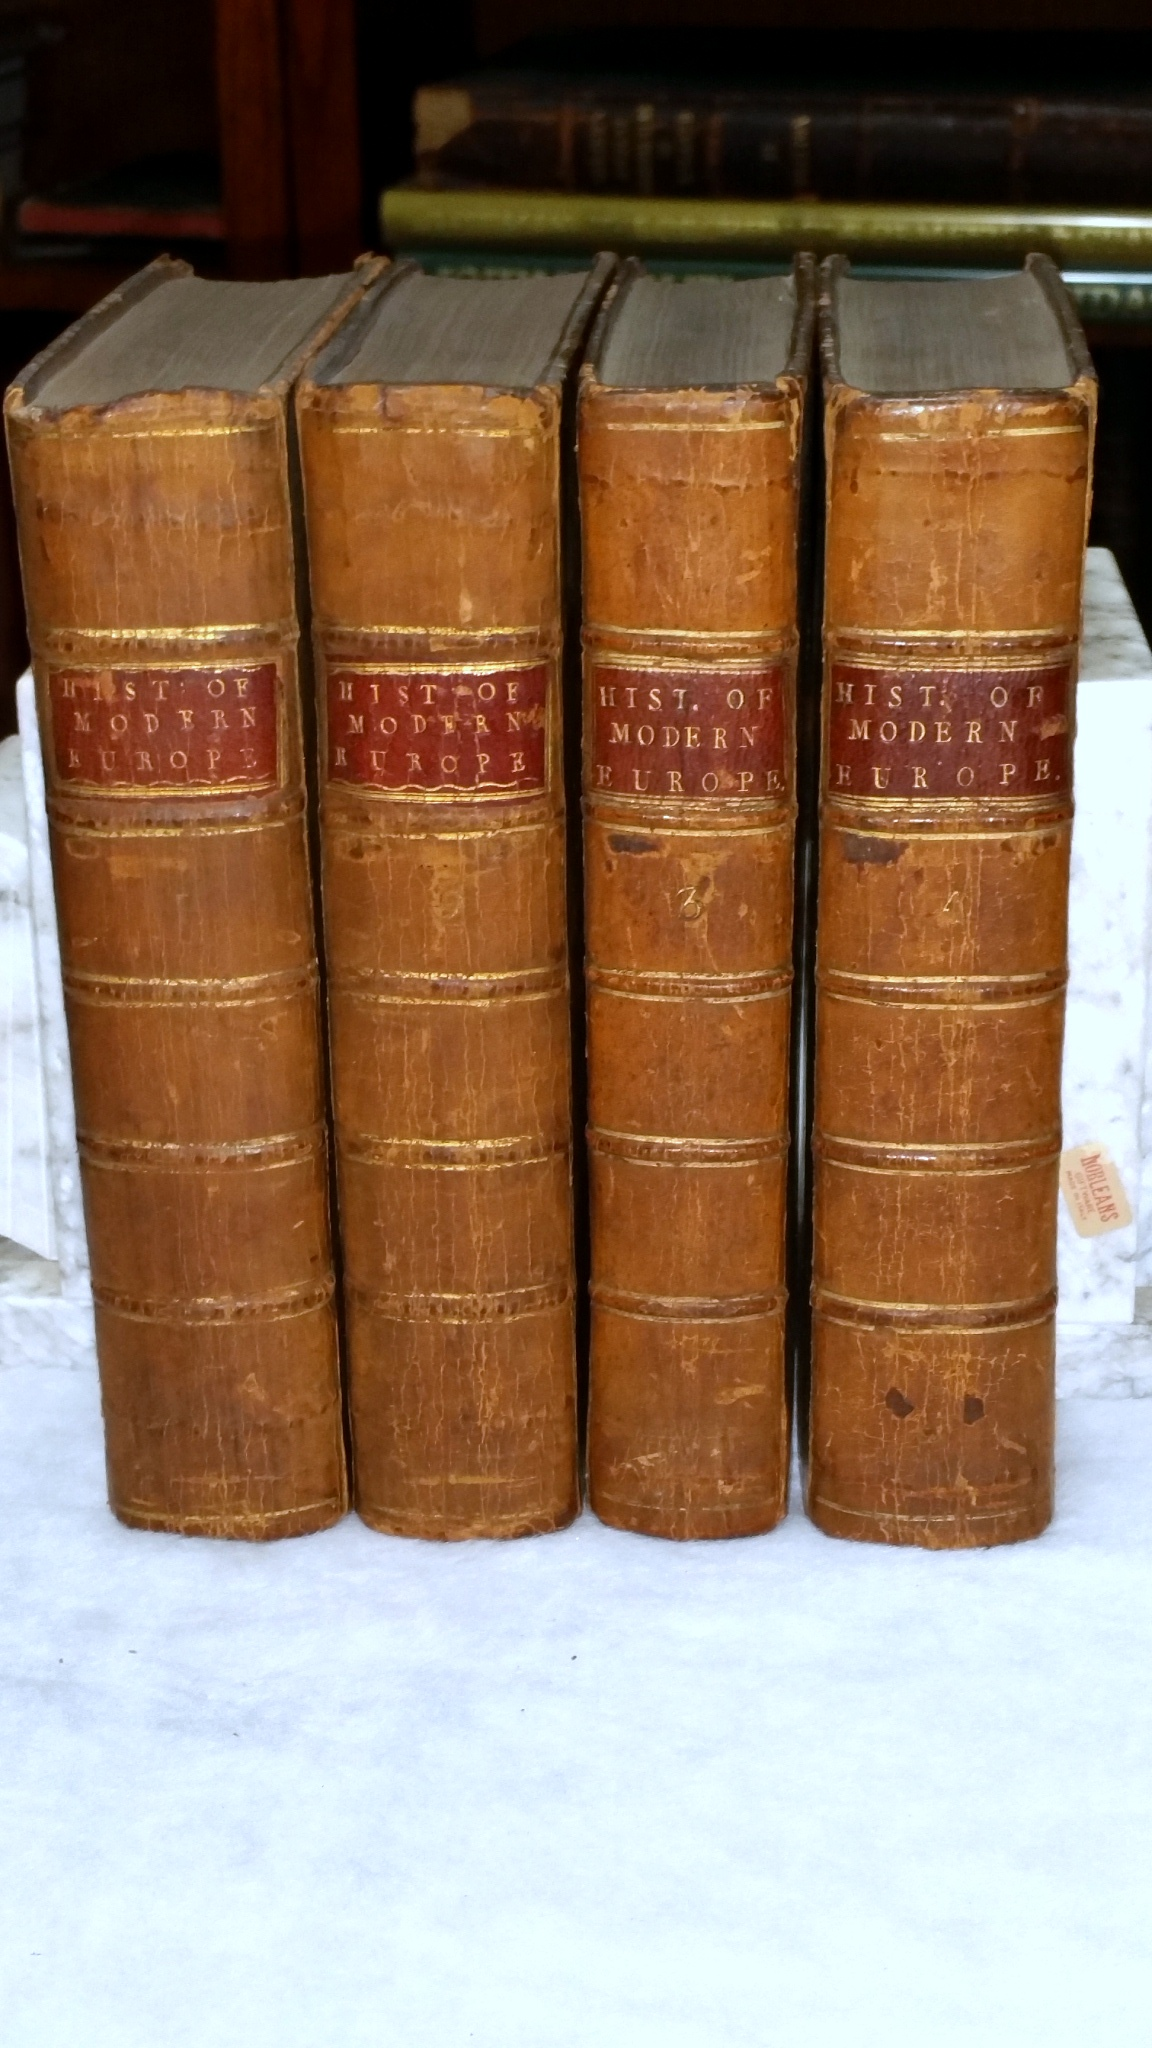 Image for The History of Modern Europe.  With an Account of the Decline and Fall of the Roman Empire, and a View of The Progress of Society, from the Fifth to the Eighteenth Century.  In a Series of Letters from a Nobleman to His Son (Two Parts in Four Volumes)